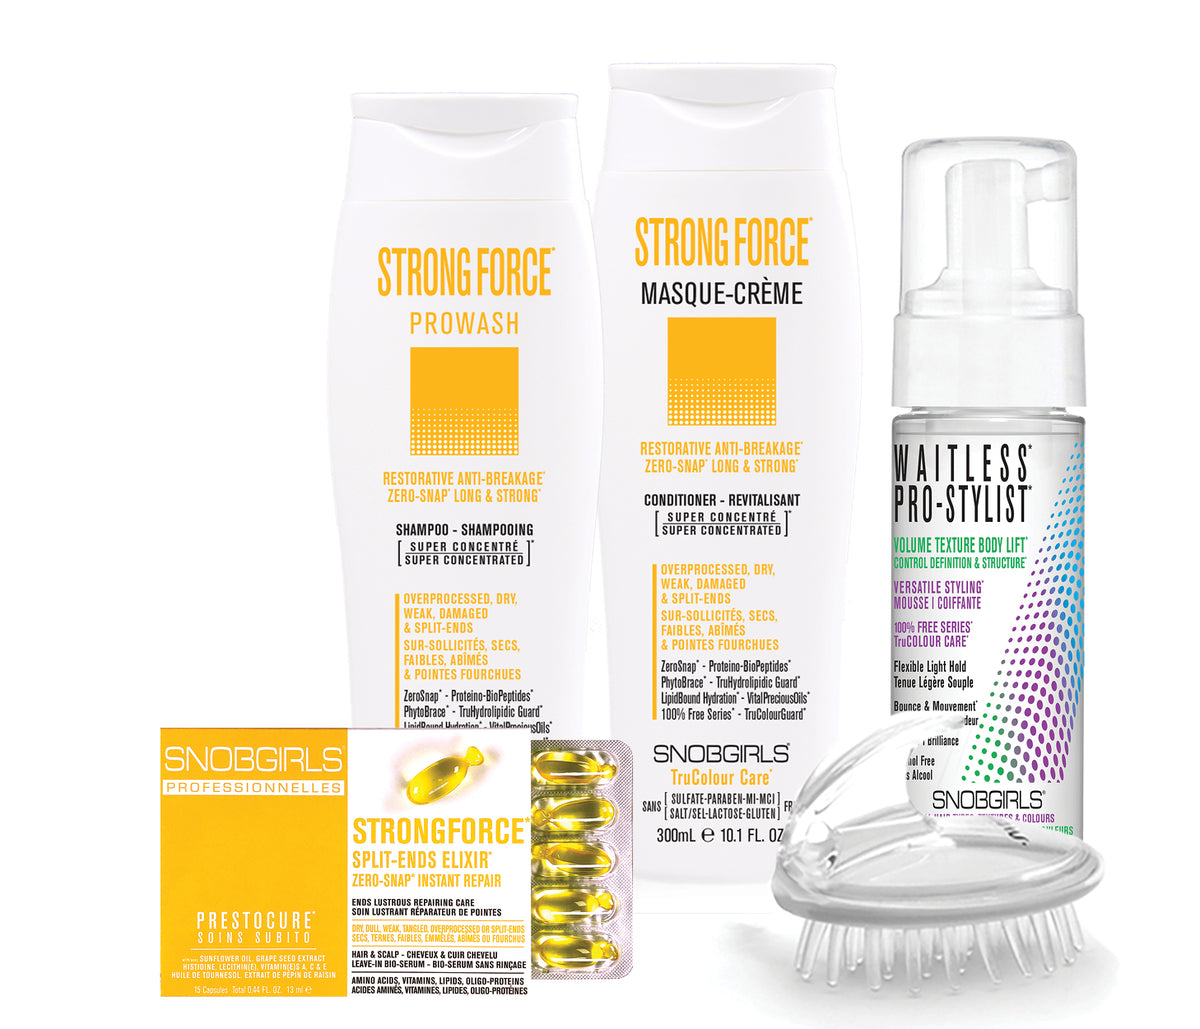 STRONGFORCE TRIO RESTORATIVE ANTI-BREAKAGE Bundle - SNOBGIRLS.com